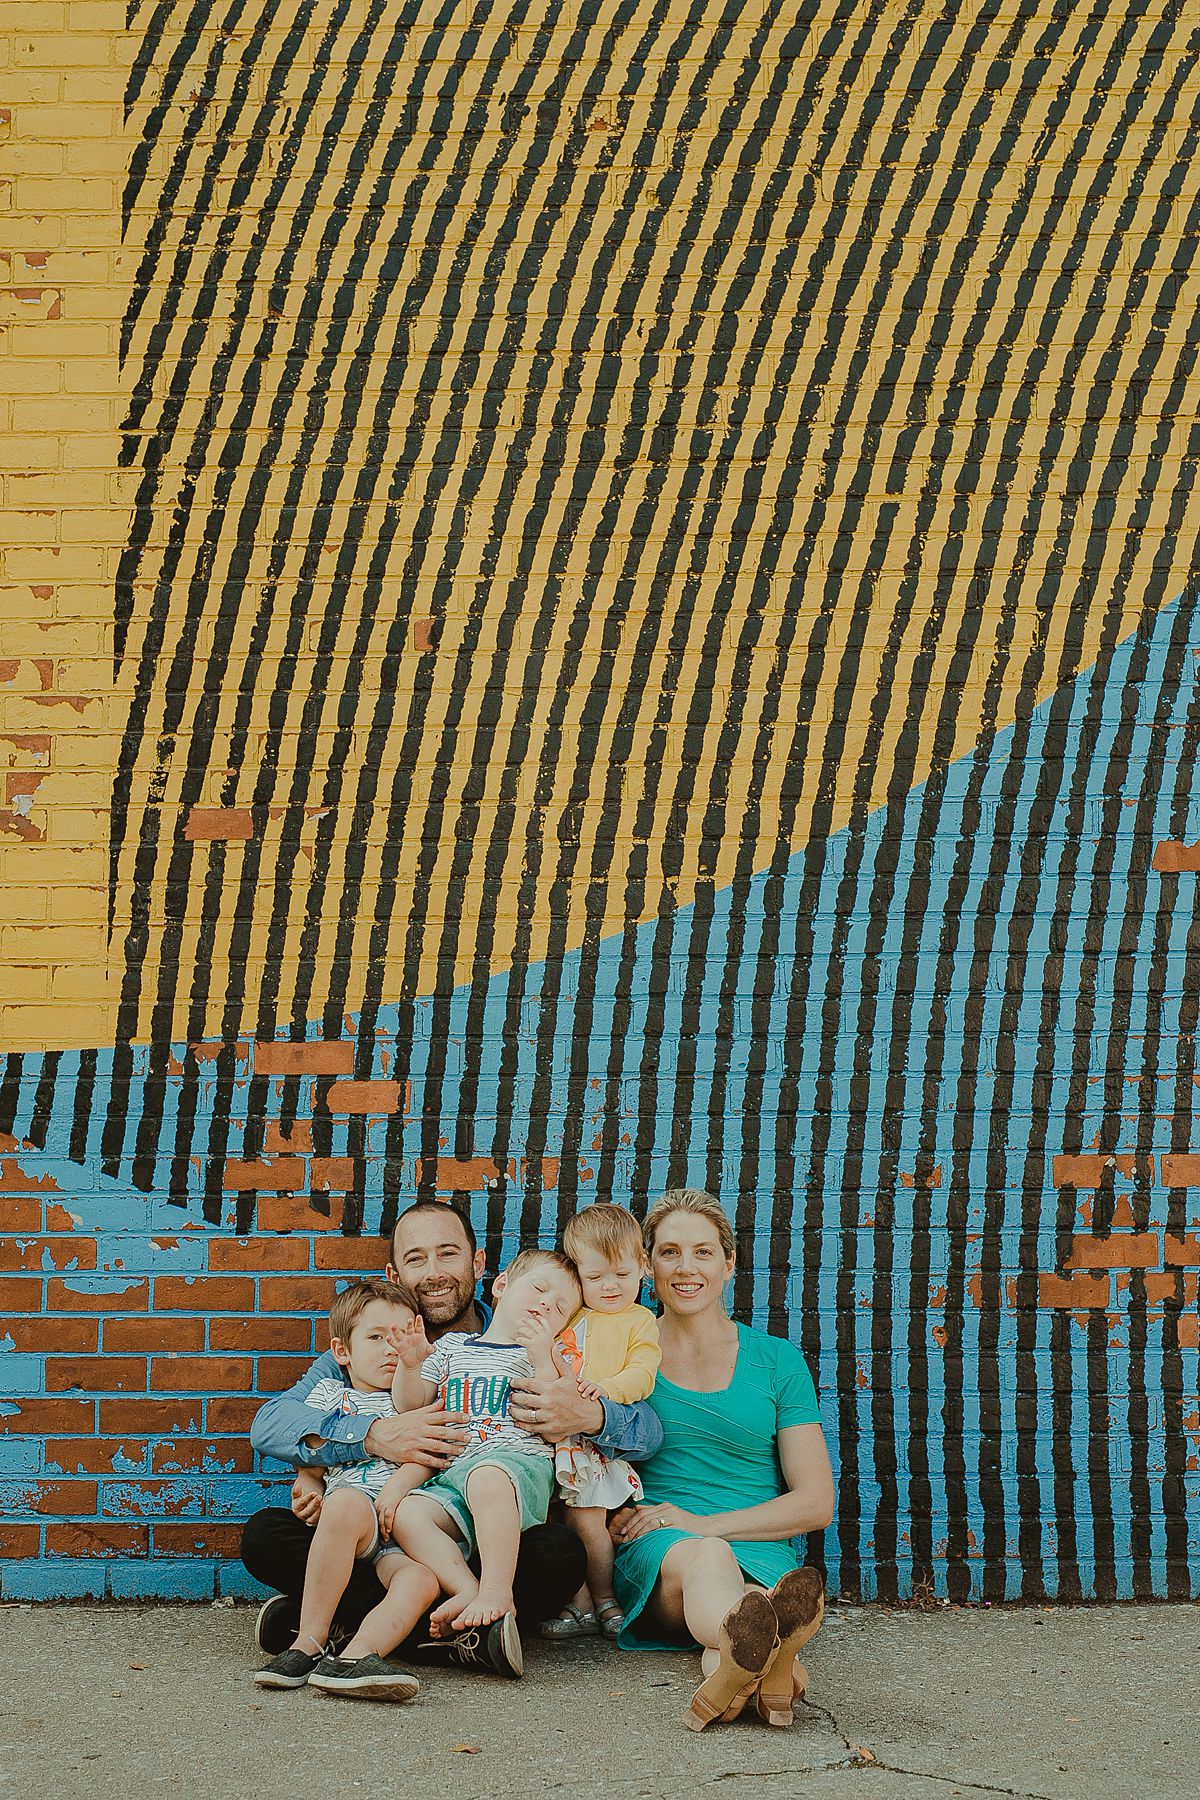 family portrait in front of colorful graffiti wall in dumbo brooklyn. image by nyc family photographer krystil mcdowall